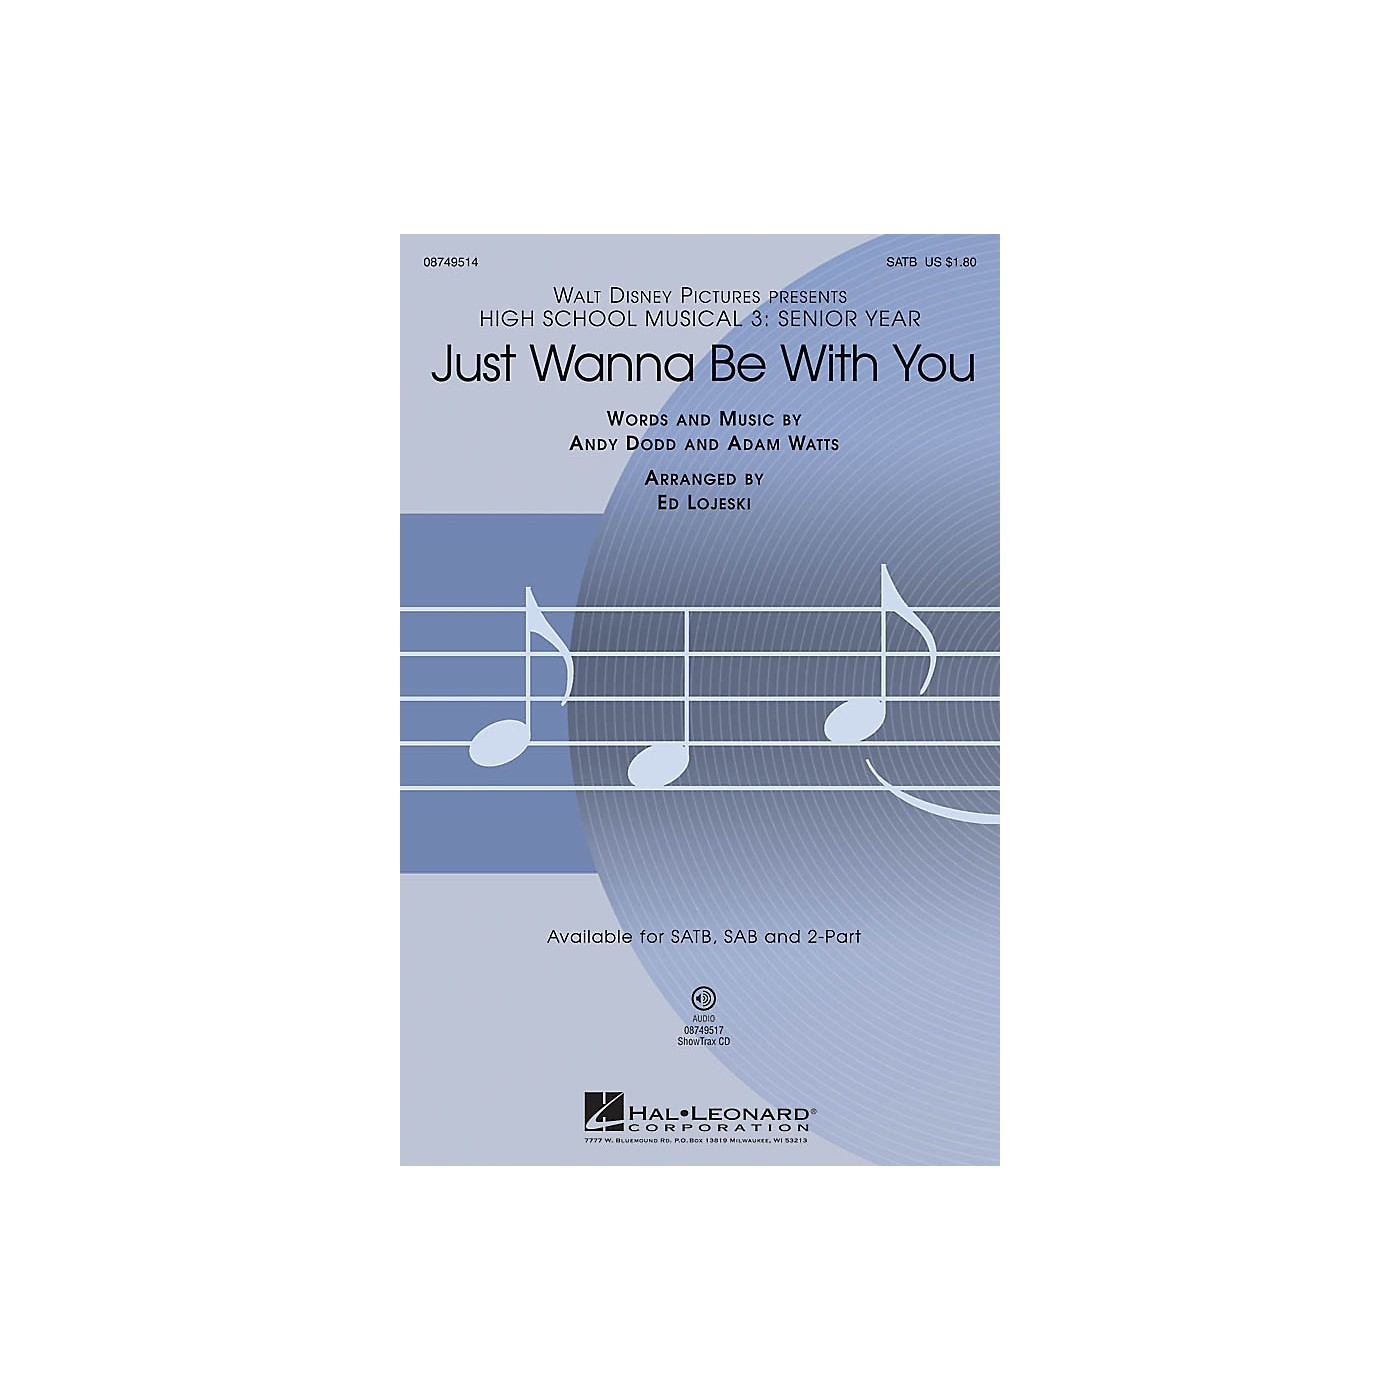 Hal Leonard Just Wanna Be with You (from High School Musical 3) 2-Part Arranged by Ed Lojeski thumbnail